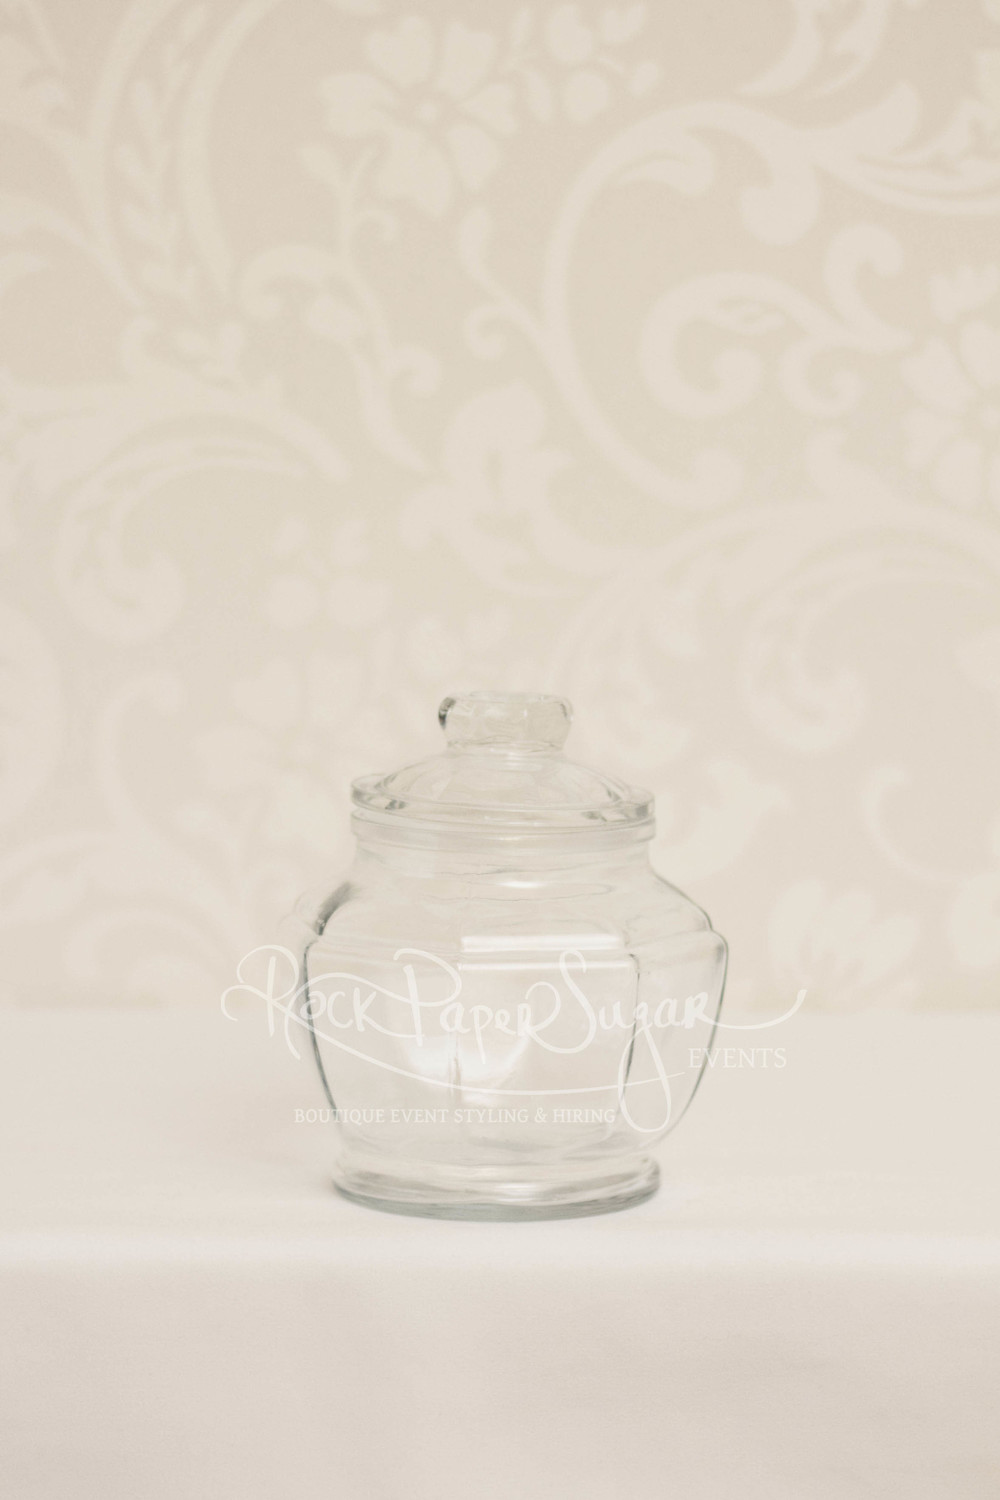 Rock Paper Sugar Events Glassware 005.jpg